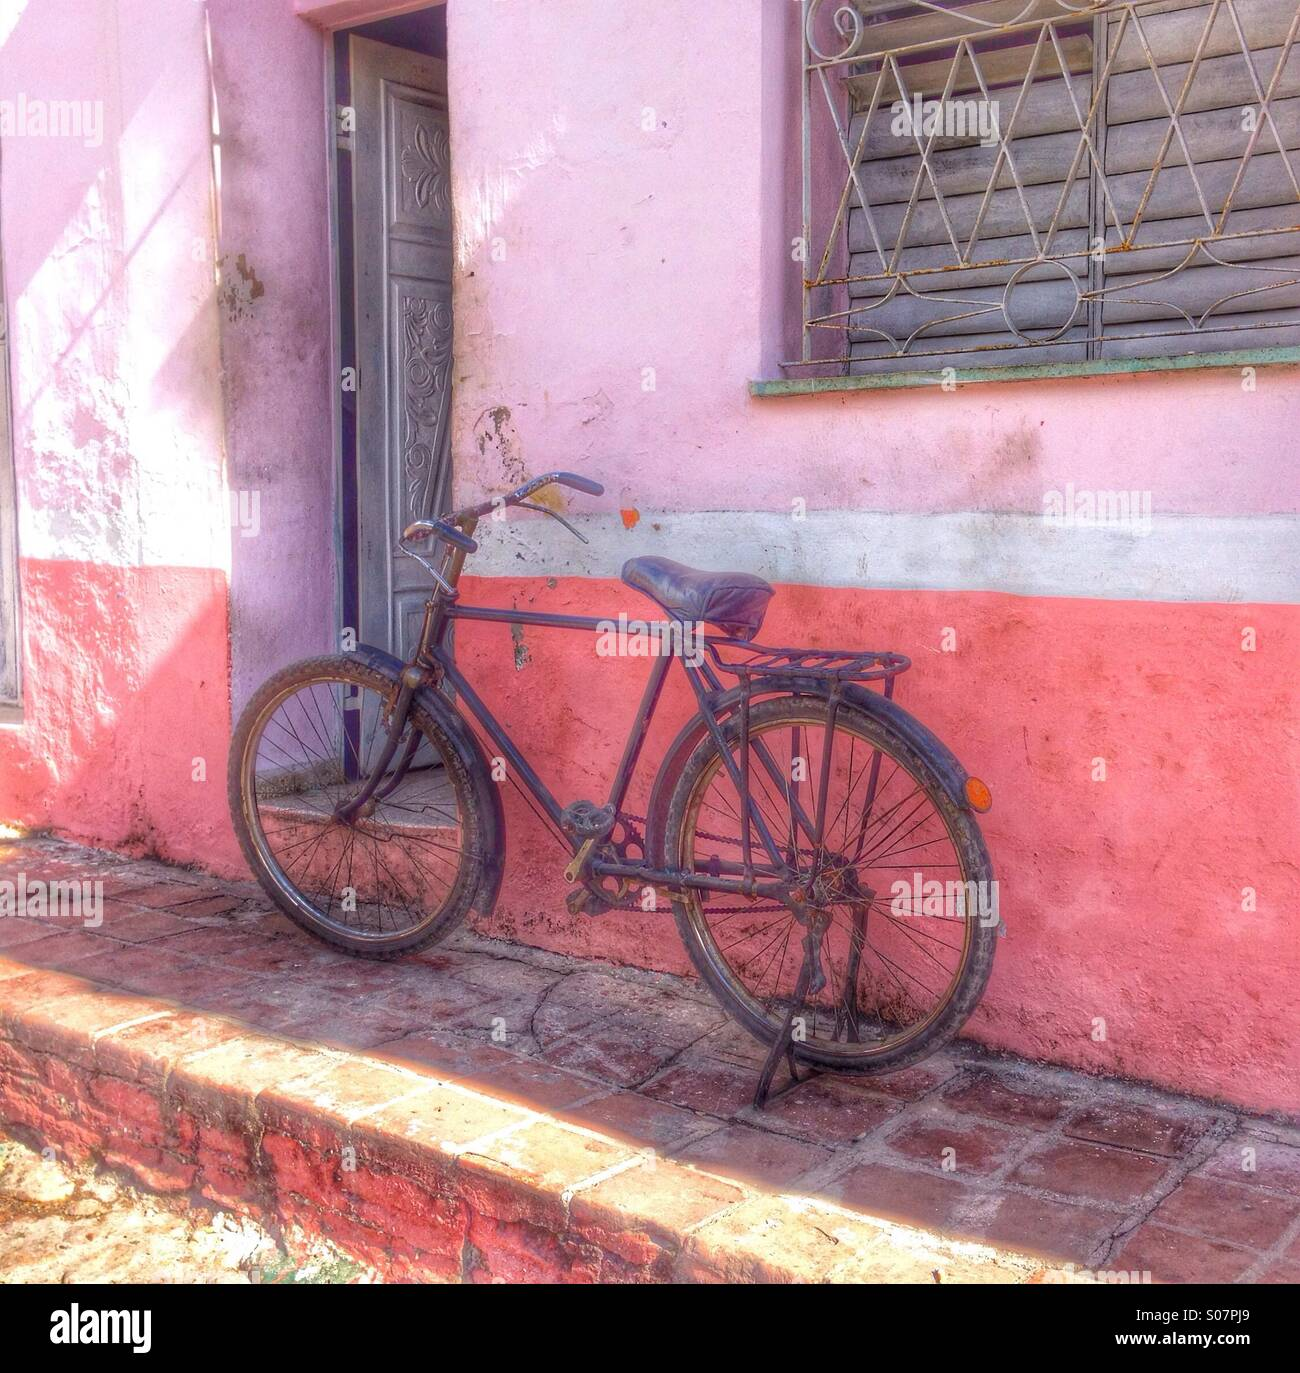 bicycles against a pink painted wall, Cuba. - Stock Image